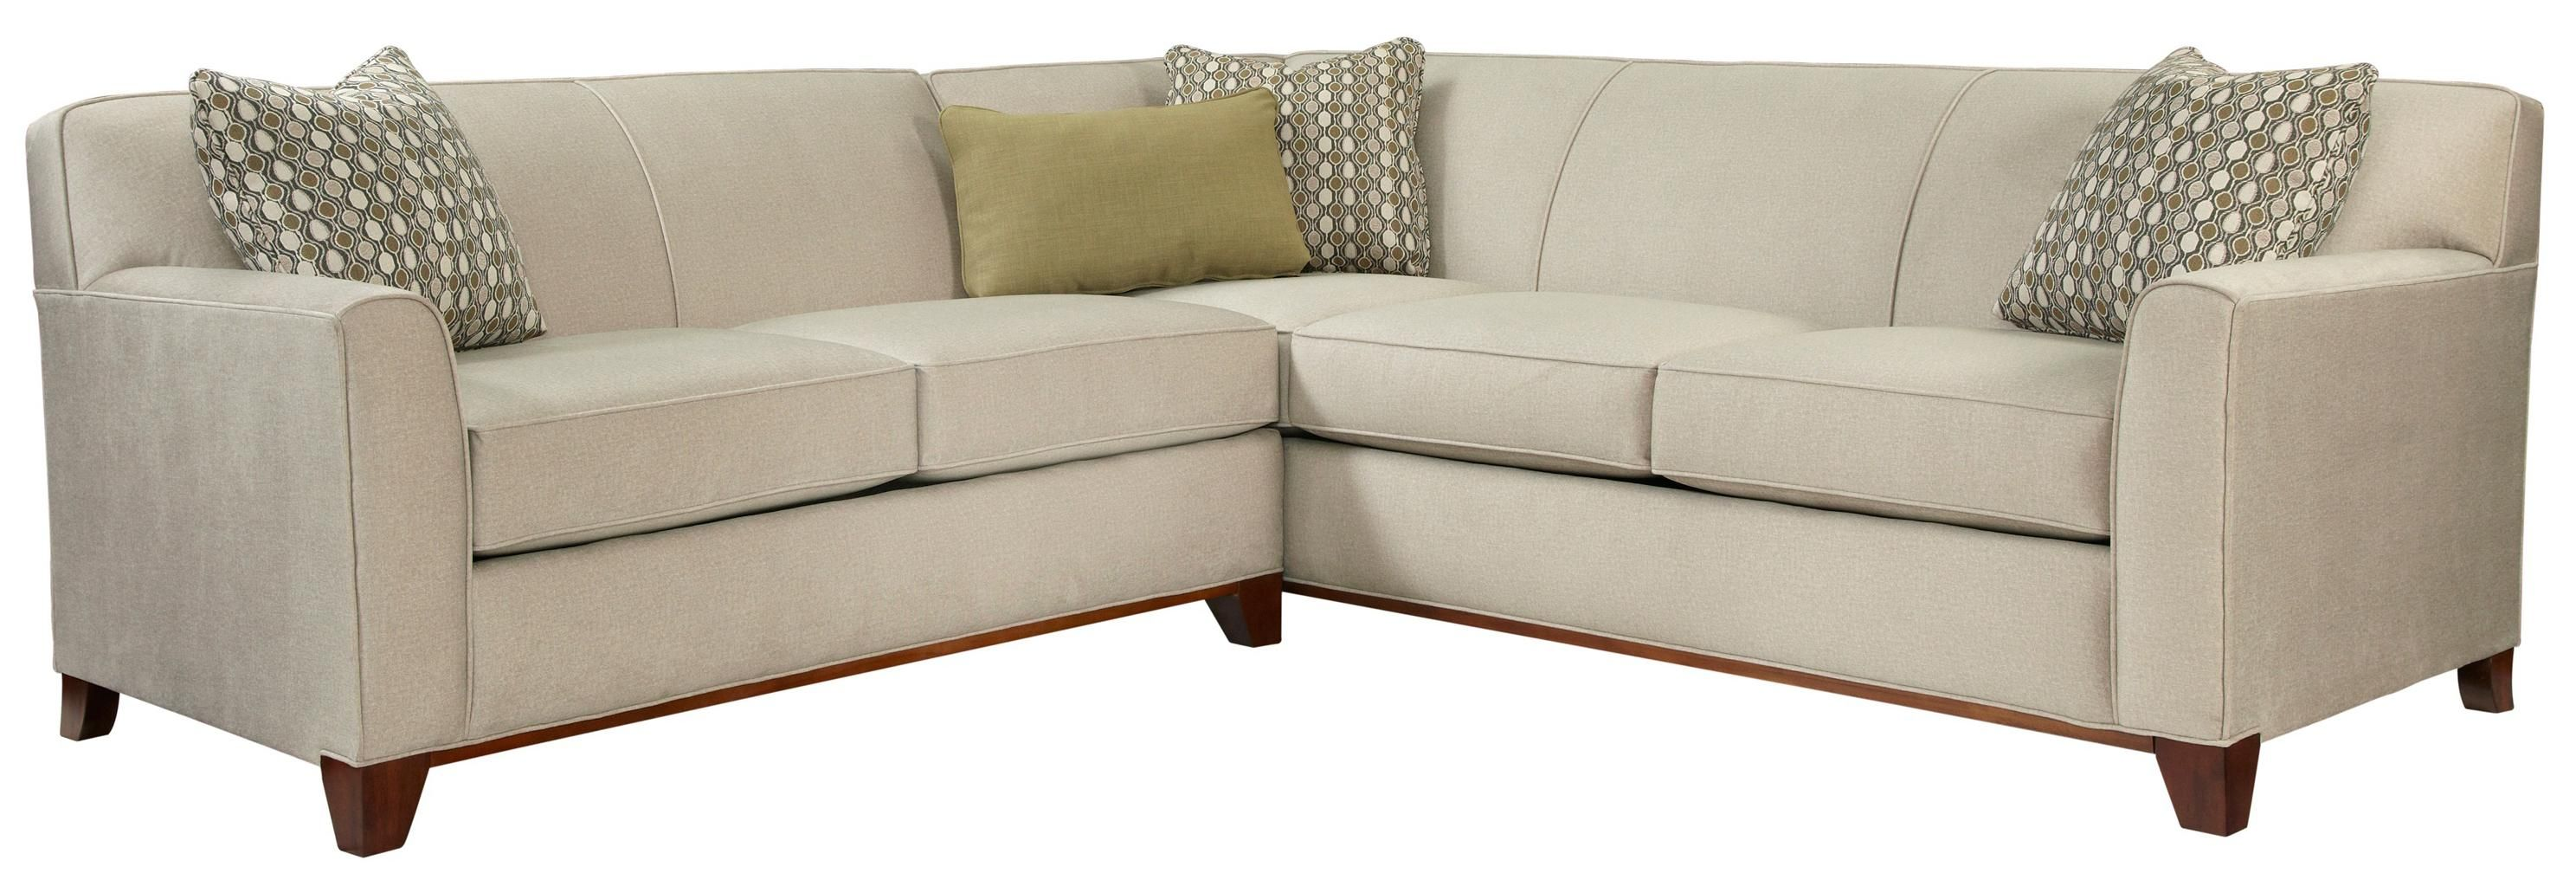 Layla 2 Piece Track Arm Corner Sectional by Broyhill Furniture ...